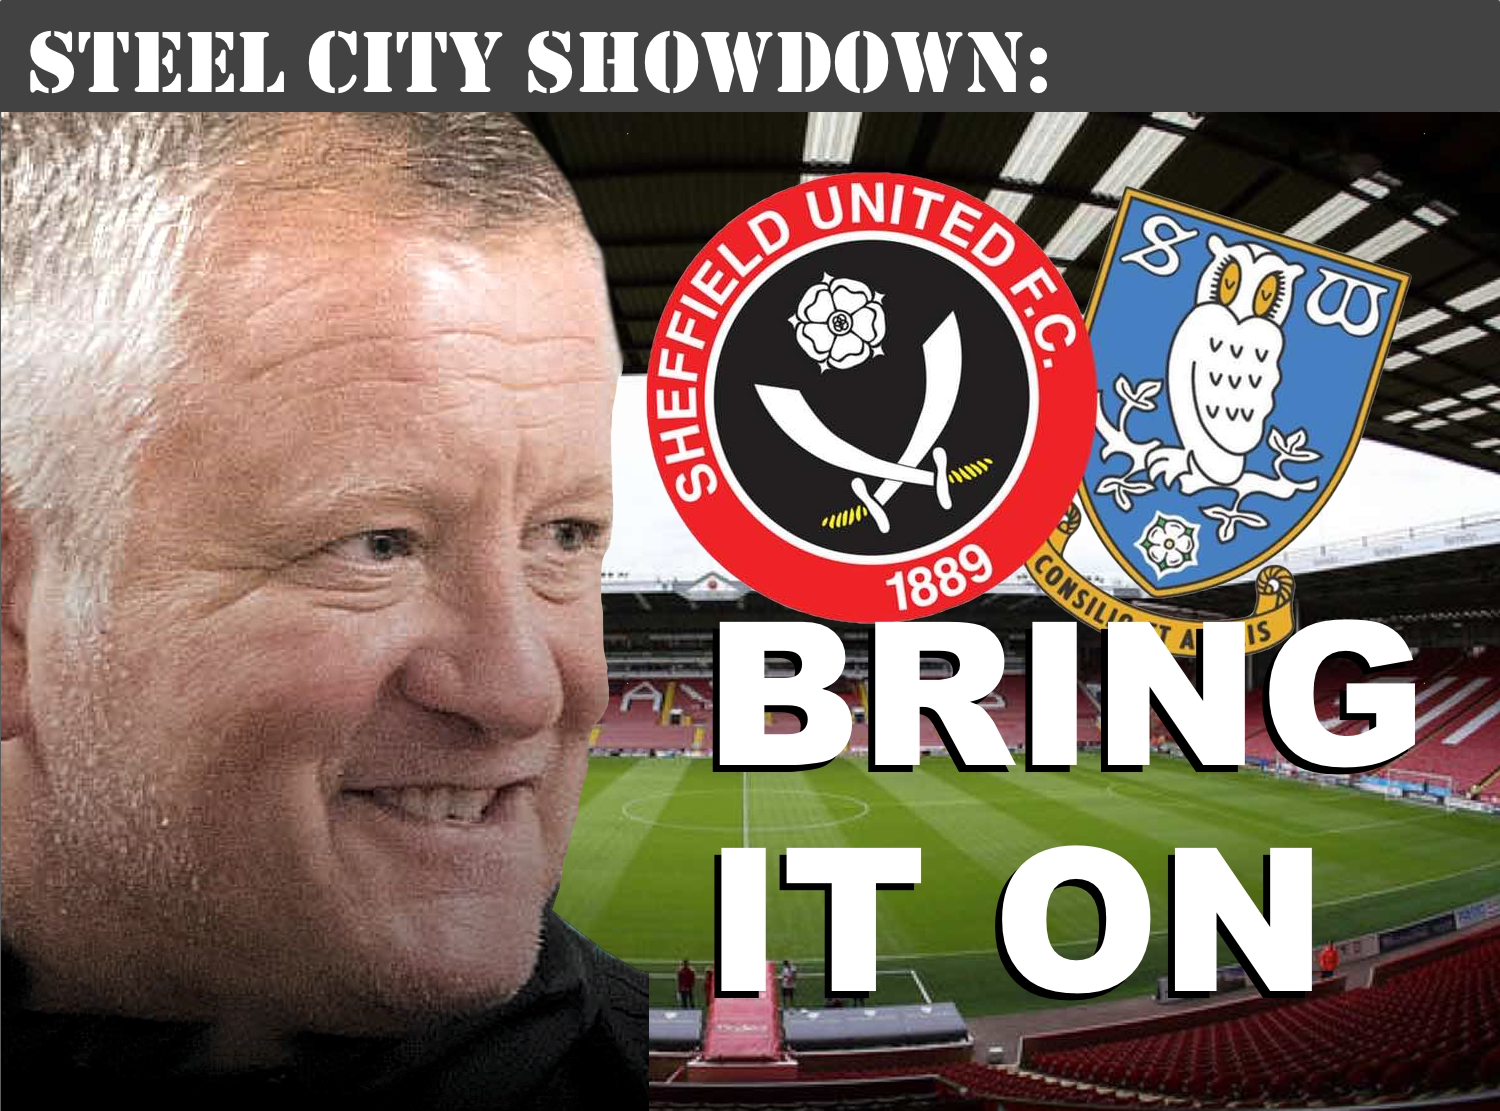 Steel City derby ready for lift off at Bramall Lane as Blades boss Chris Wilder warns Sheffield Wednesday what to expect